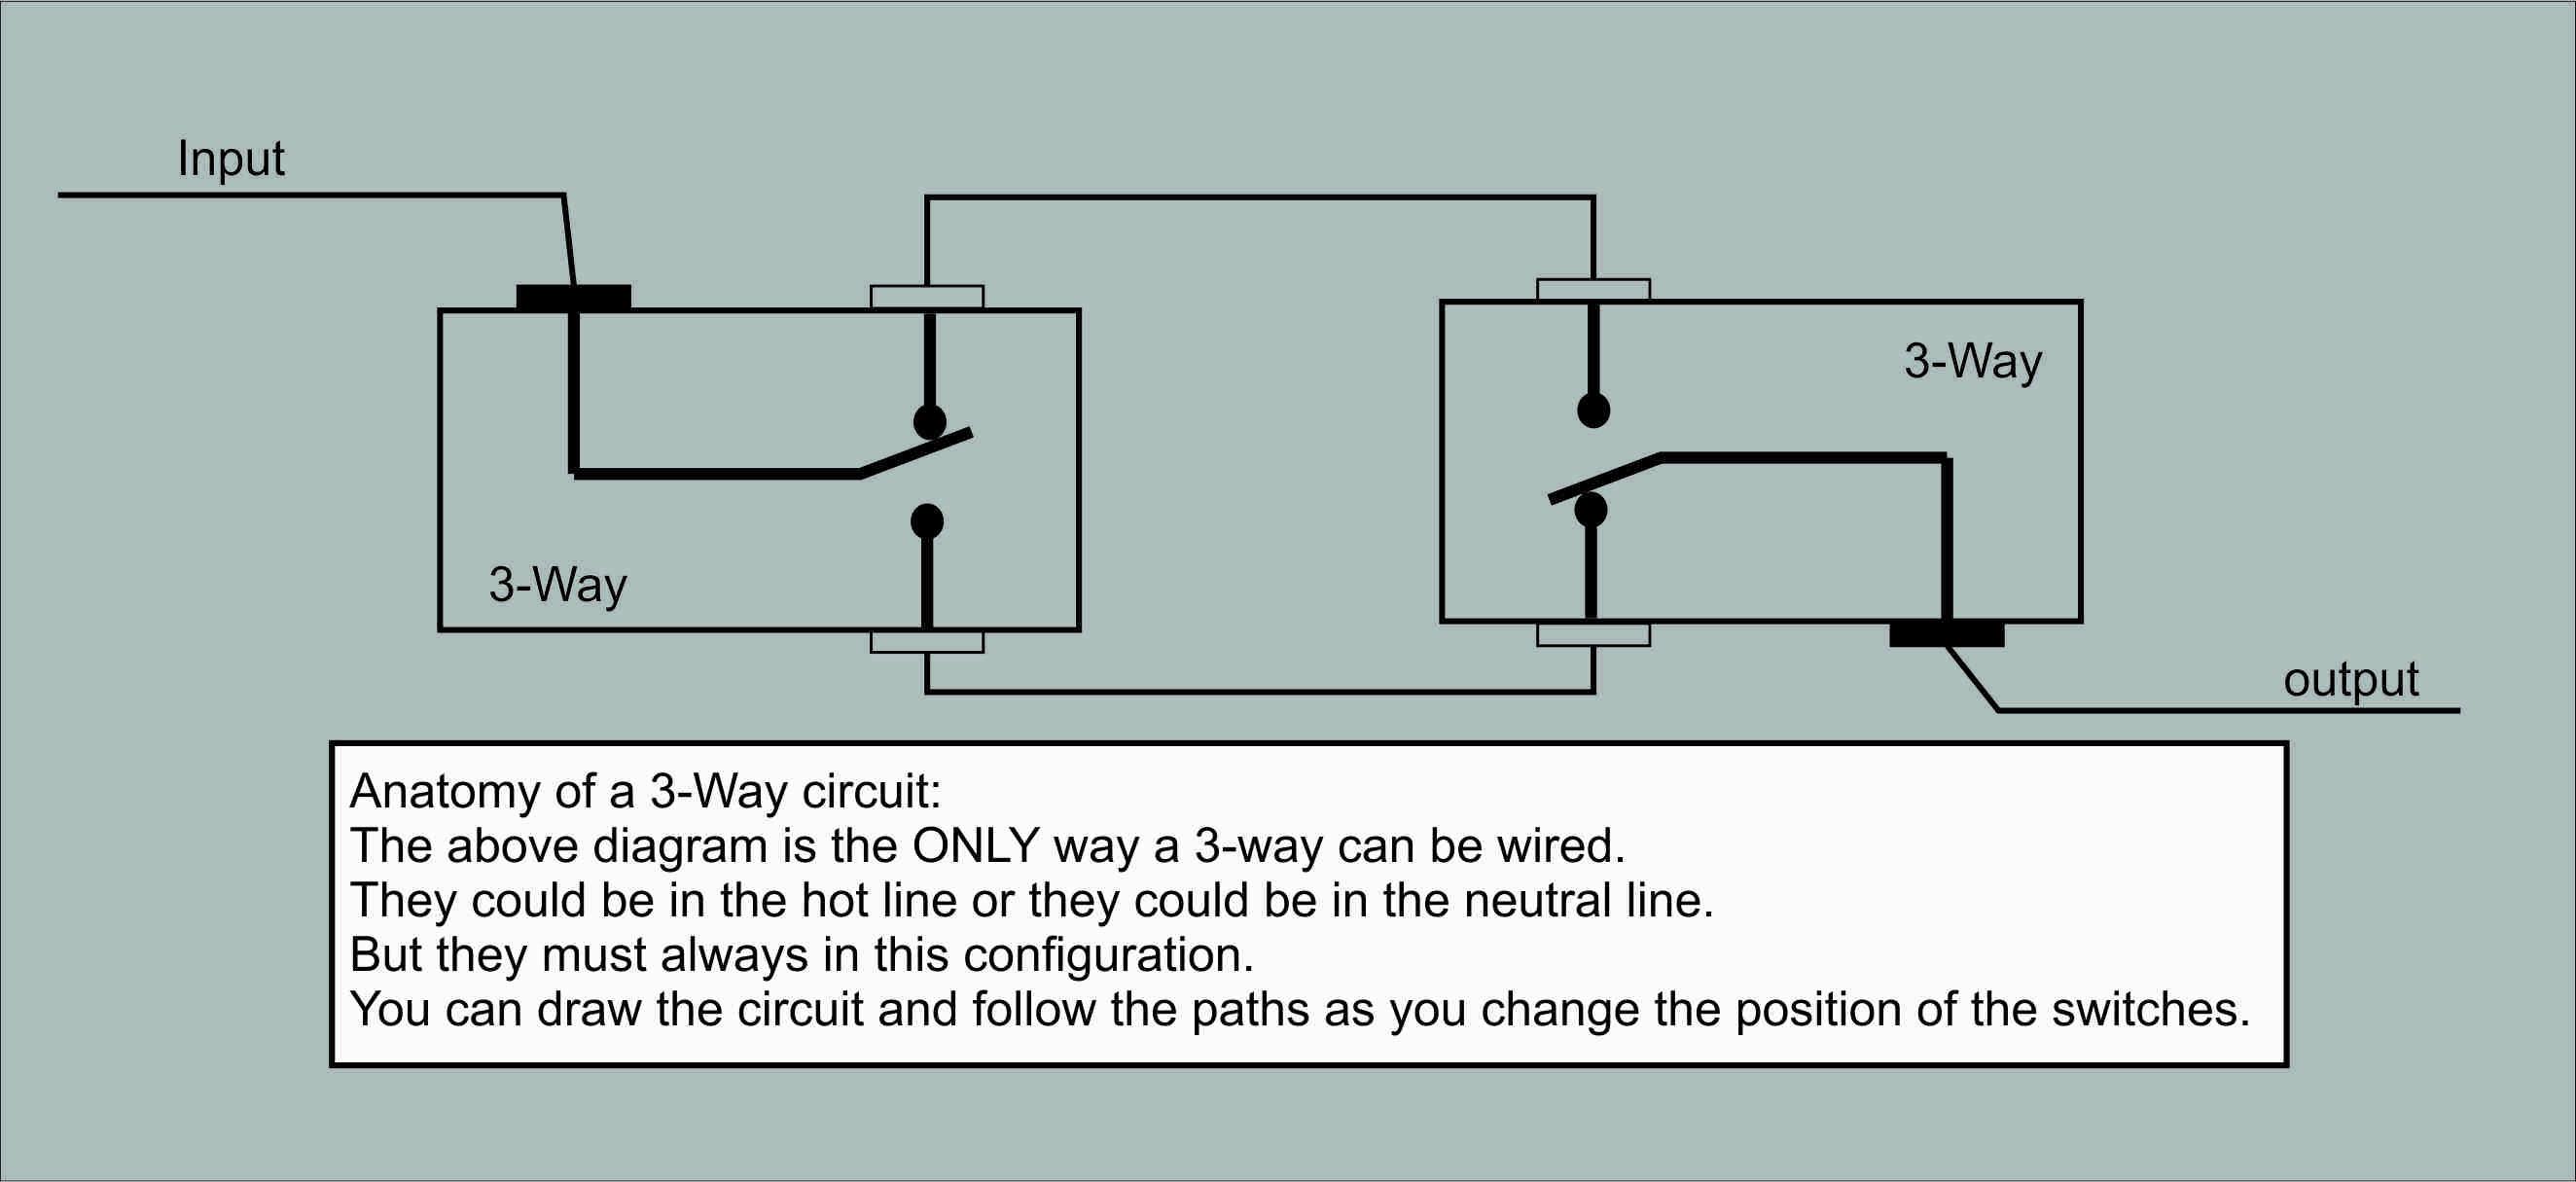 Anatomy Of A 3 Way Circuit Wiring Discussion Inovelli Community